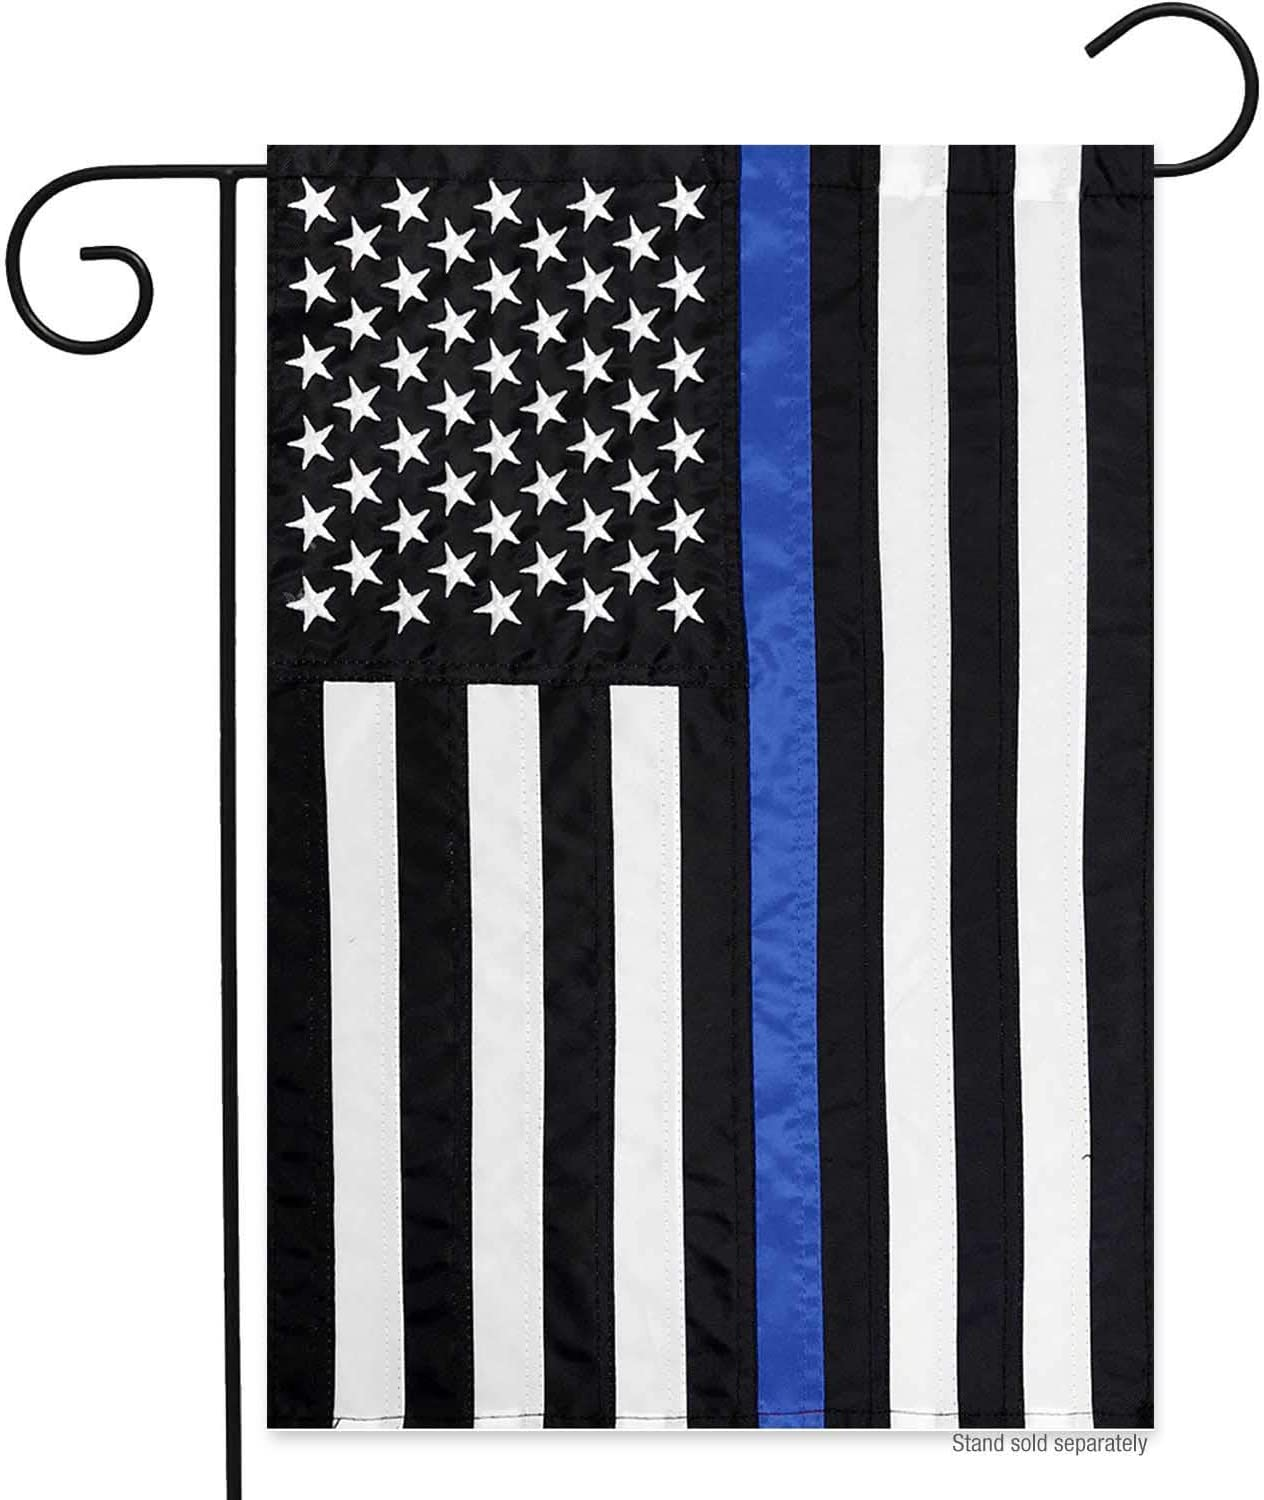 RODAOA Embroidered Thin Blue Line Police Garden Flag- 12x18 Double Sided Blue Stripes American Yard Flags Banner Honoring Law Enforcement Officers Outdoor Indoor (Embroidered)